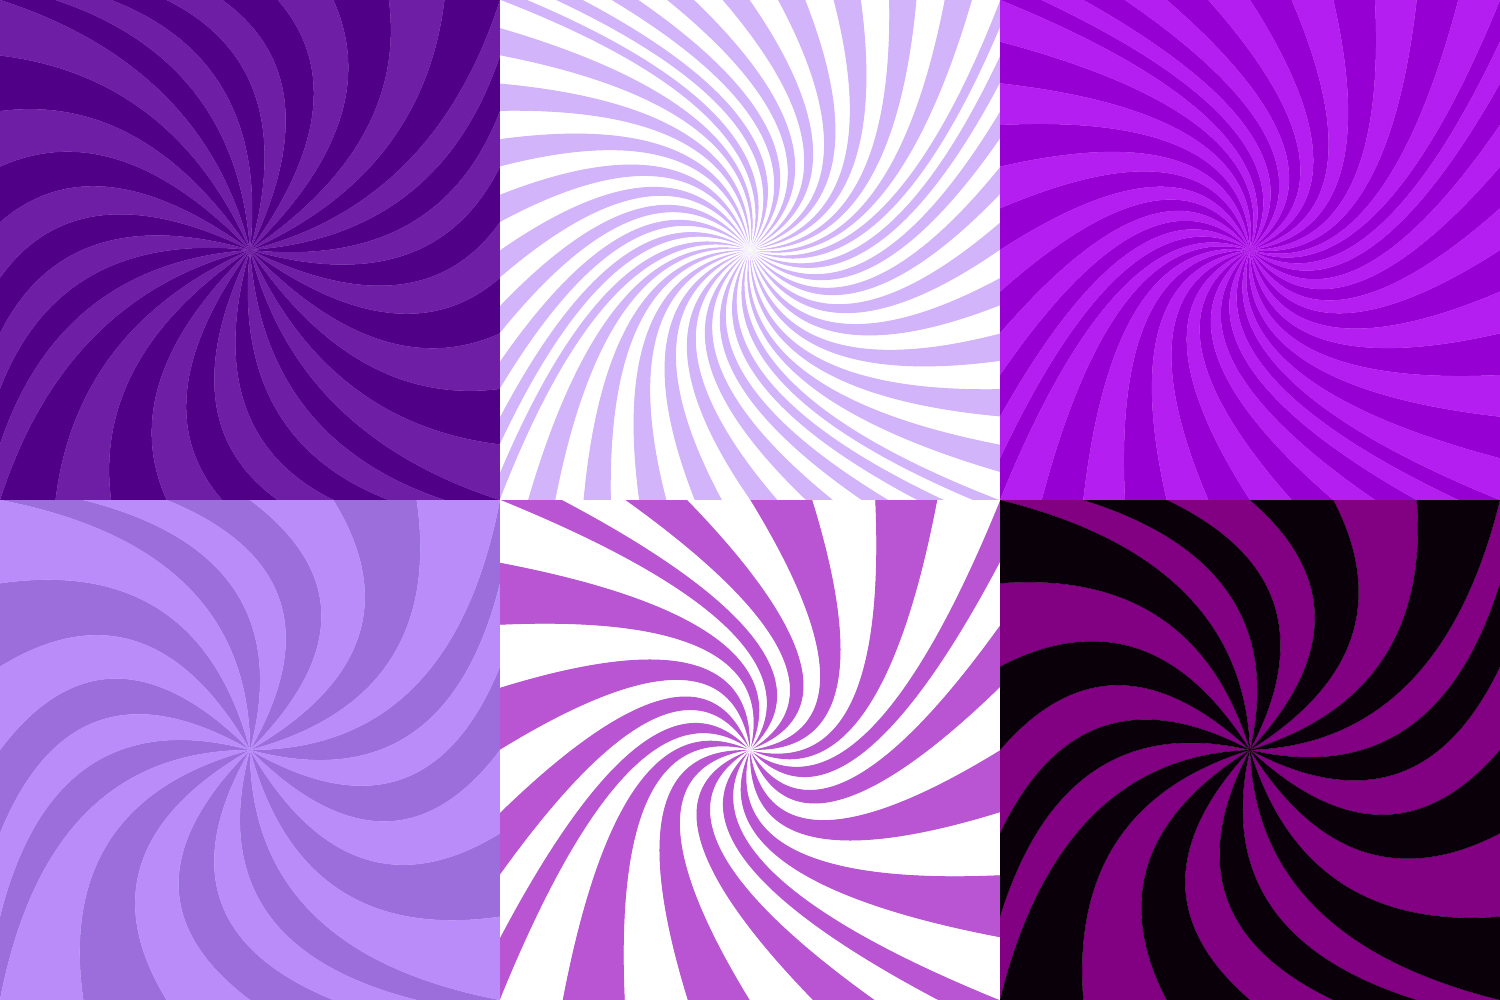 24 Purple Spiral Backgrounds AI, EPS, JPG 5000x5000 example image 3